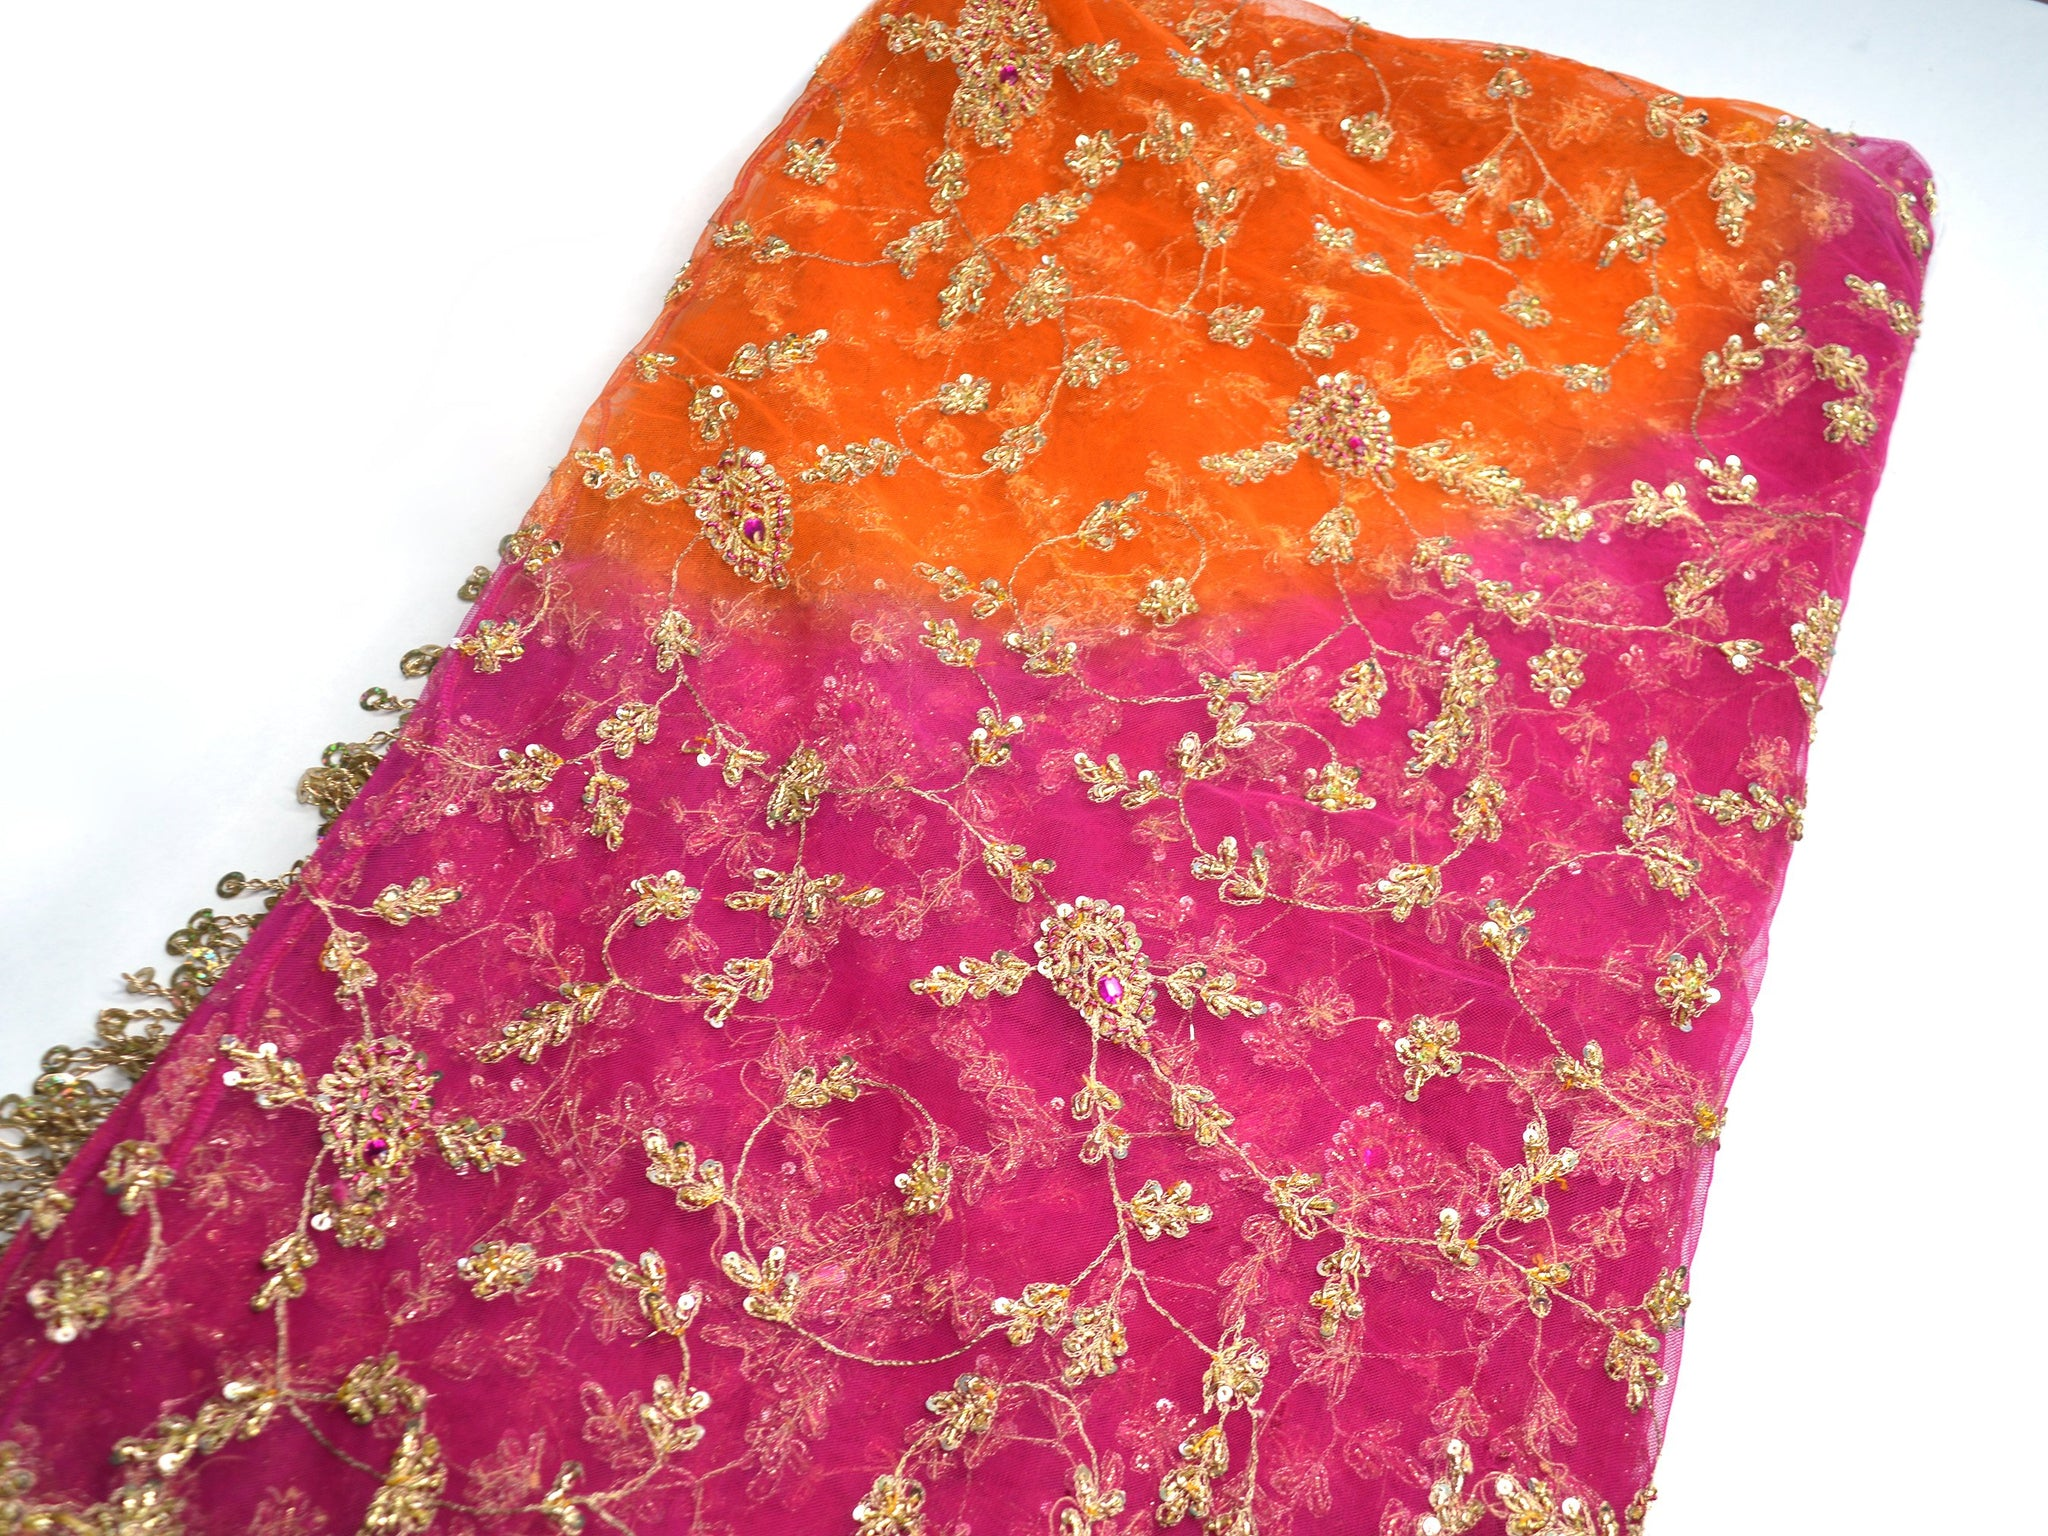 sheer orange and pink bridal shawl